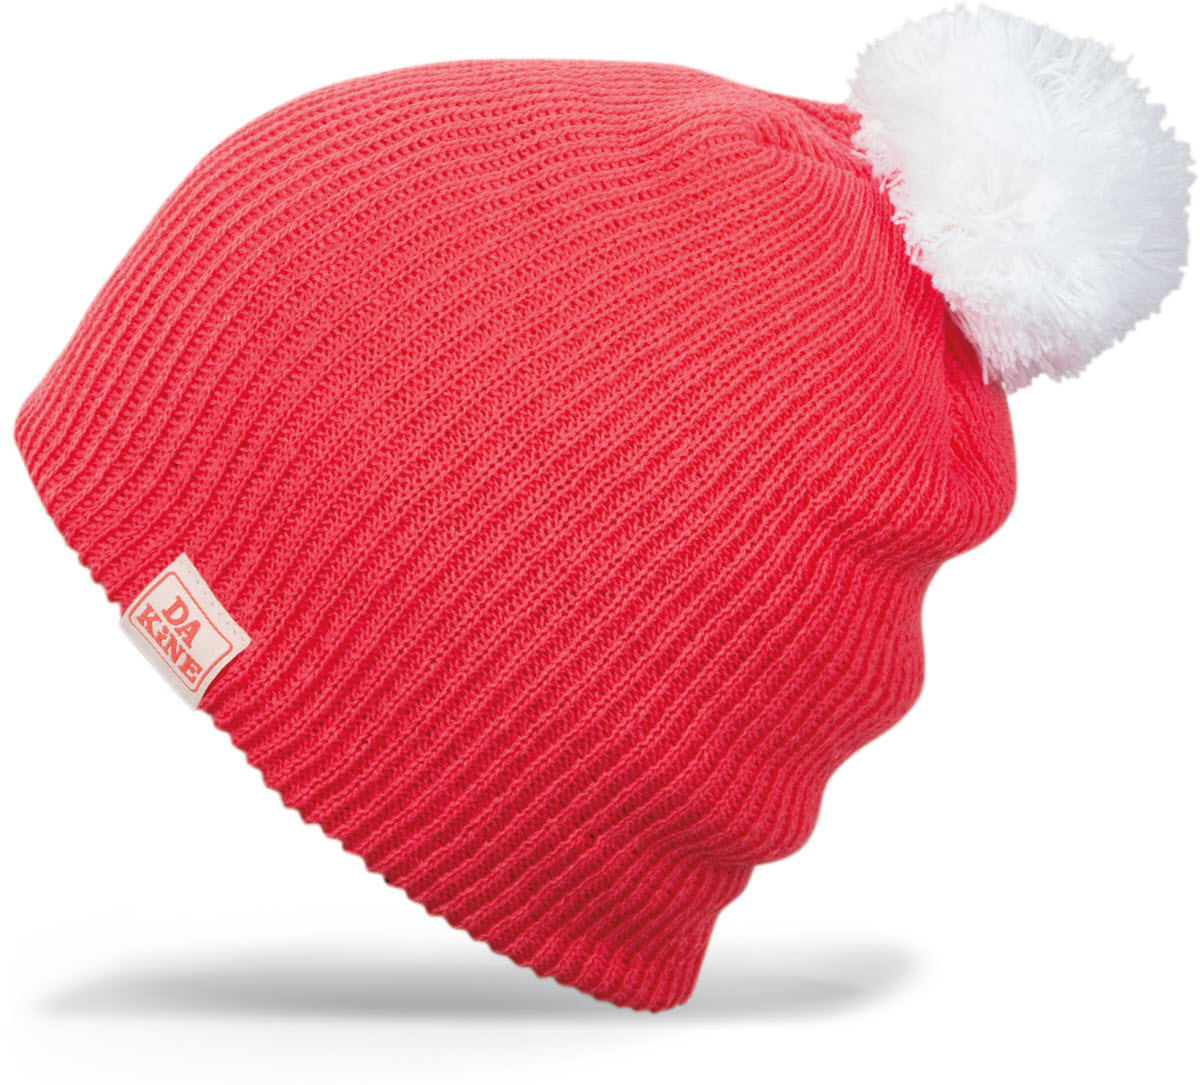 Product image of Dakine Kids Girls Wendy Beanie Hat in Coral